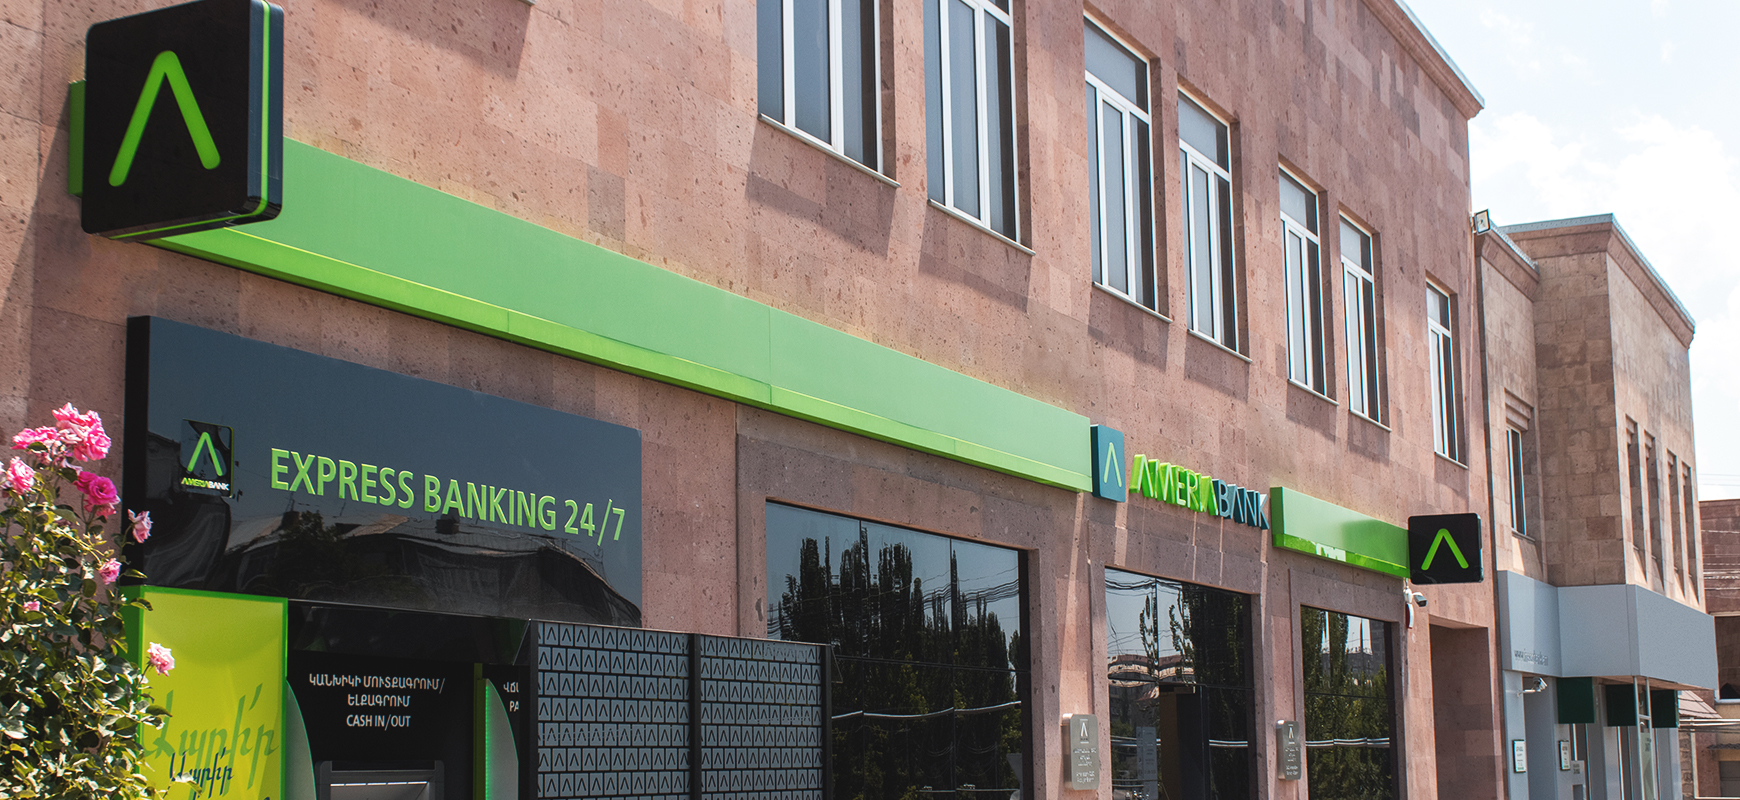 Ameriabank sign in black and green made of acrylic for outdoor branding